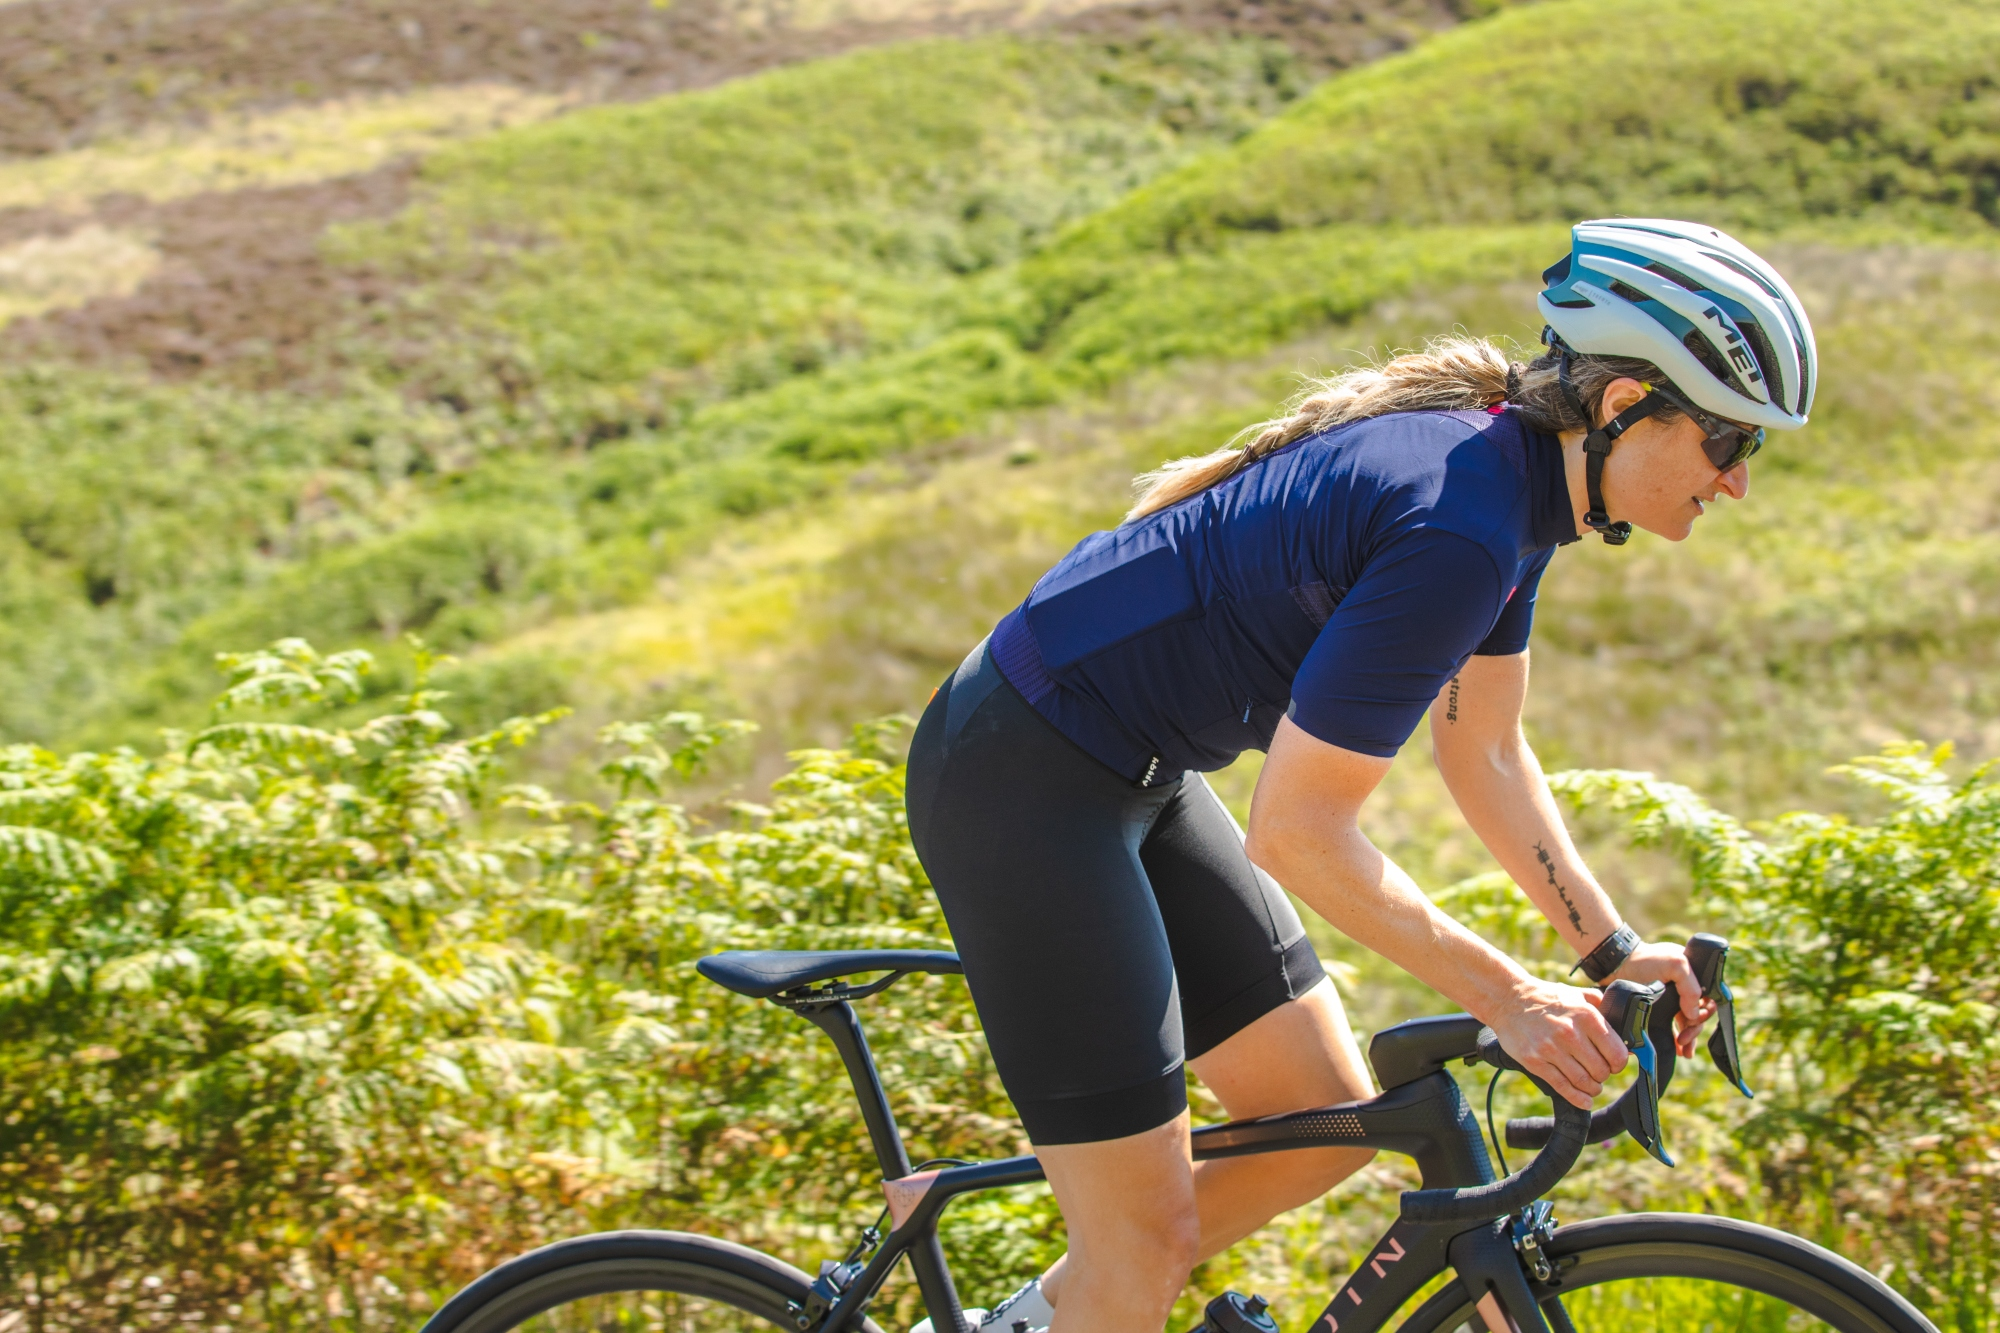 Five steps to the perfect bike (regardless if it's women's specific or not)